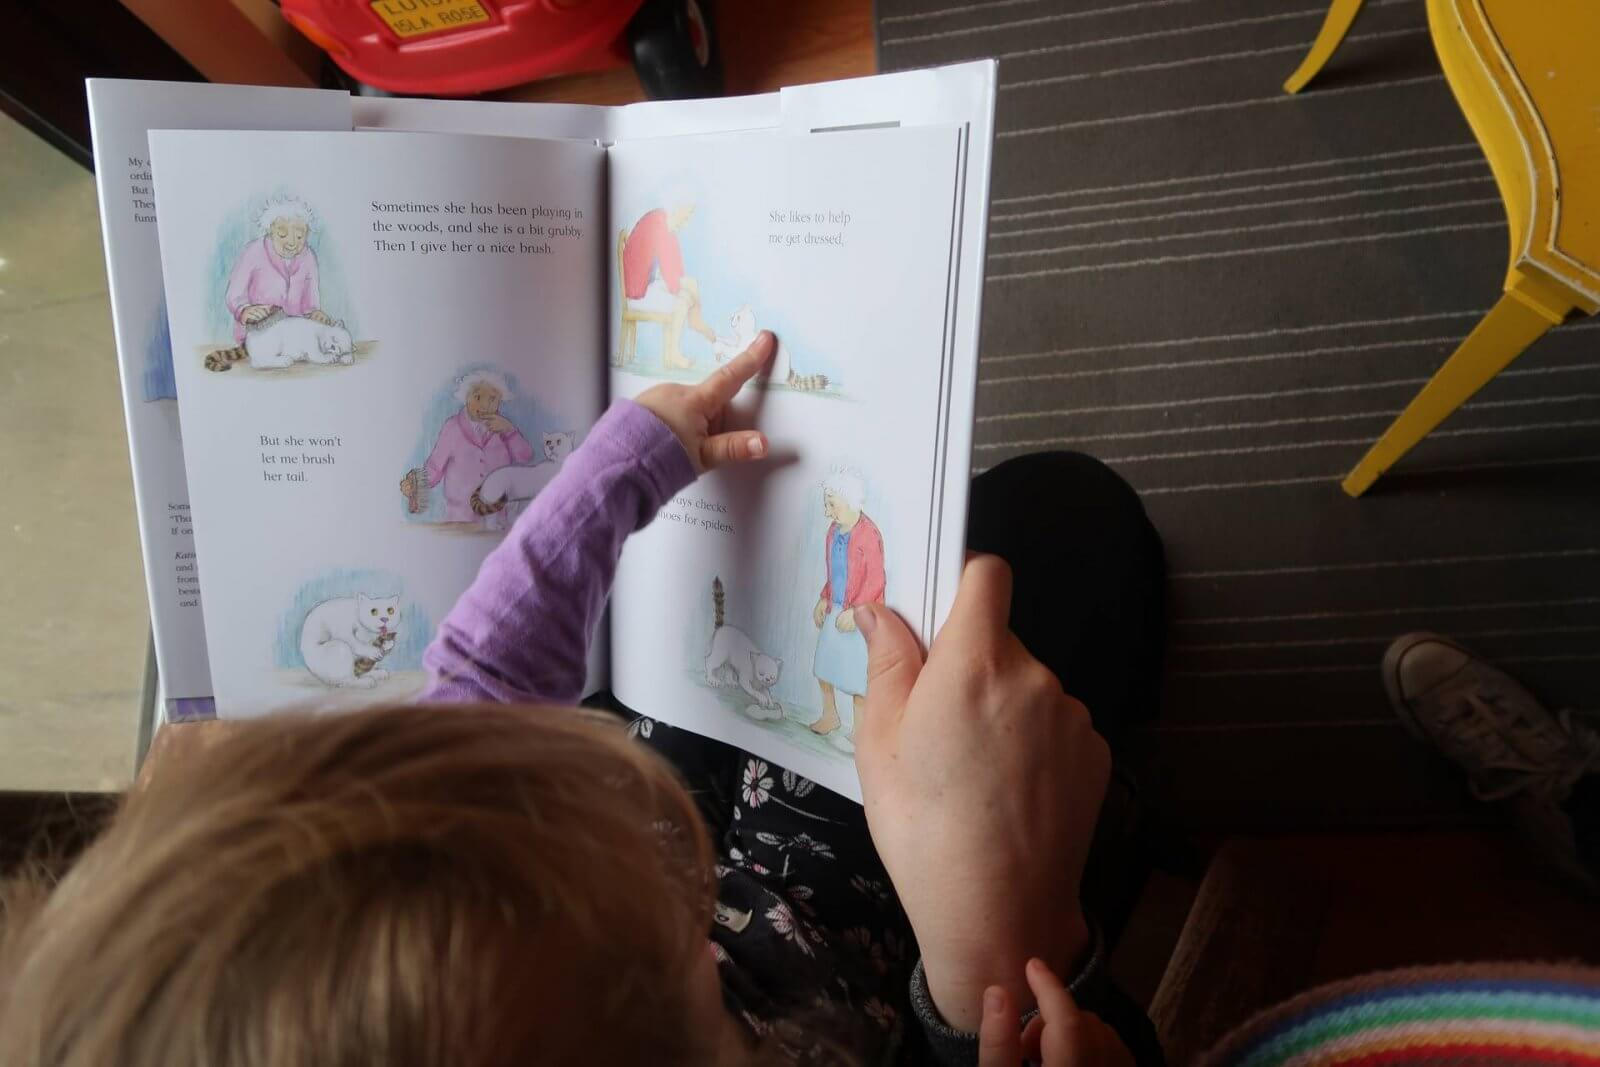 katinka's tail judith kerr review giveaway